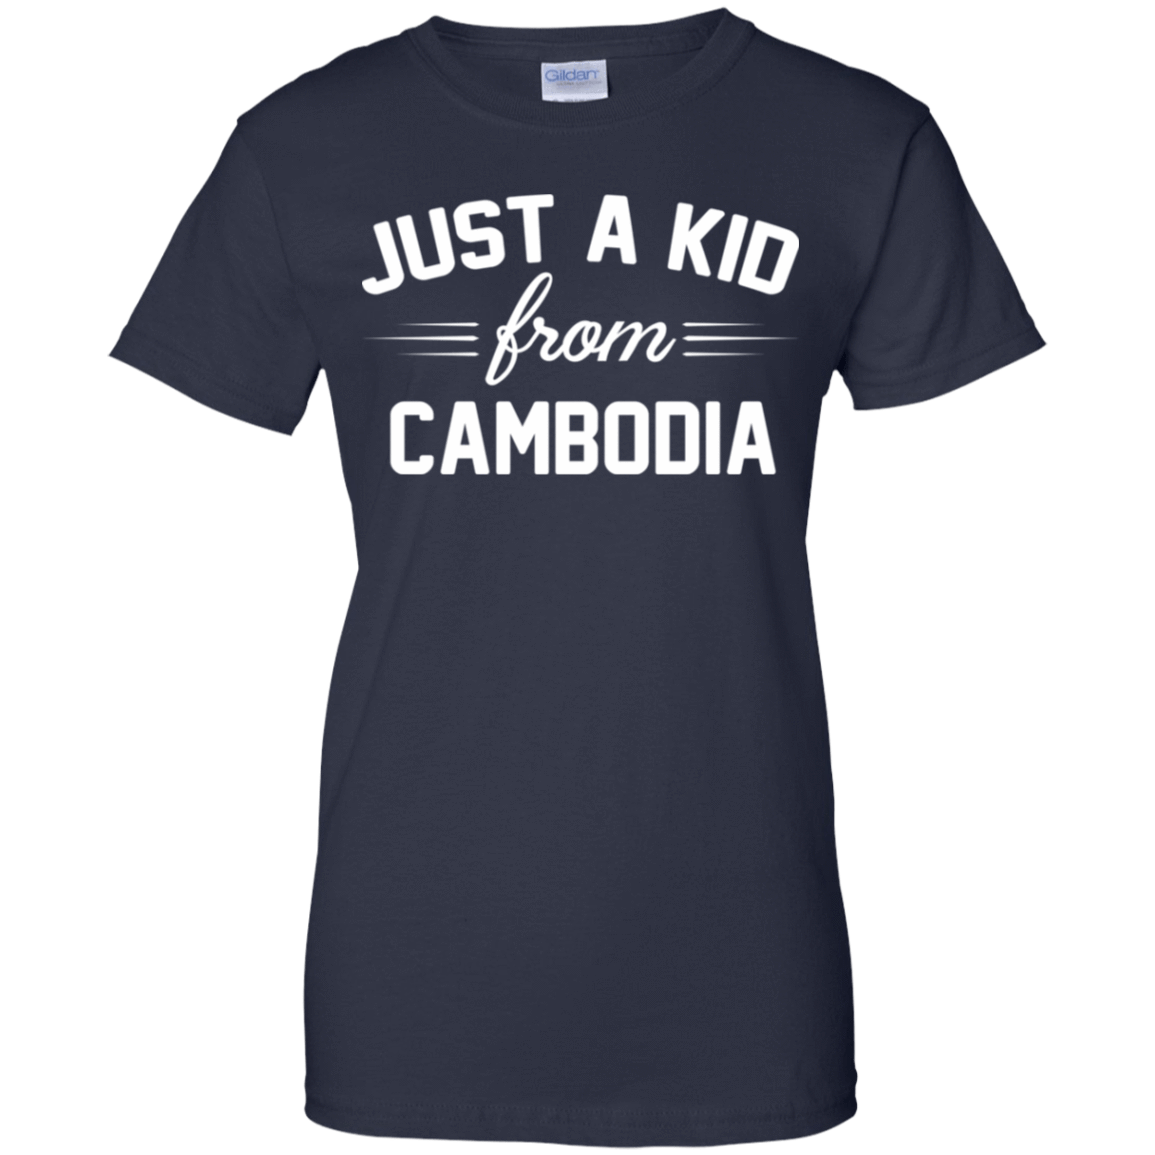 Just a Kid Store | Cambodia T-Shirts, Hoodie, Tank 939-9259-72092775-44765 - Tee Ript